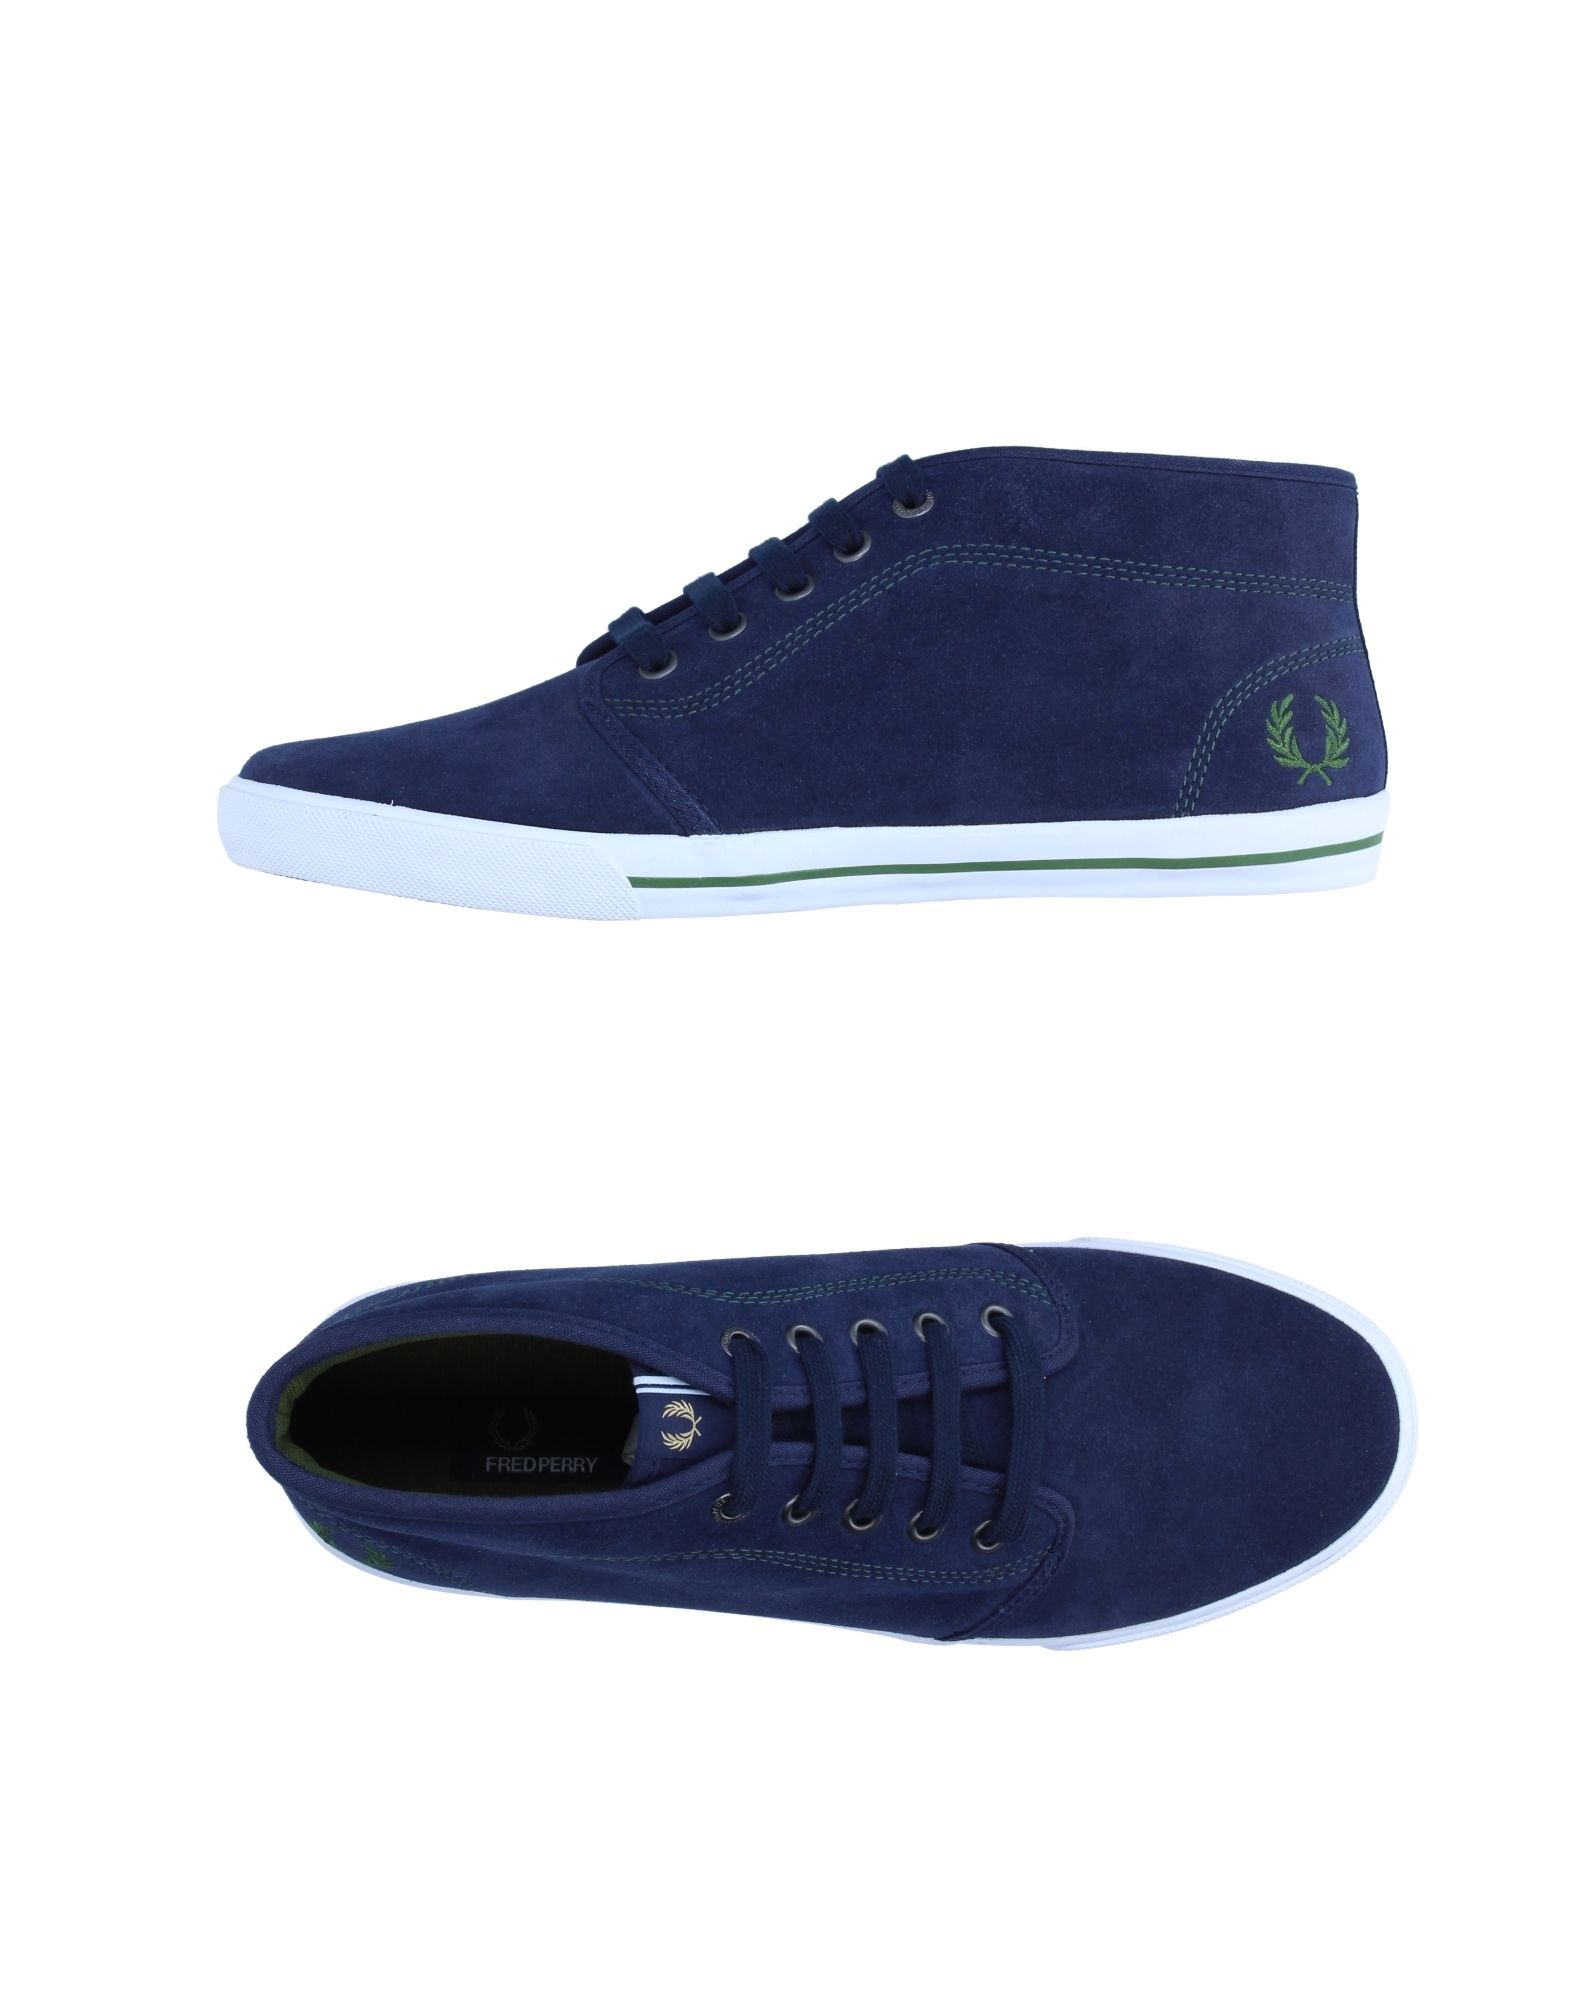 Sneakers Fred Perry Homme - Sneakers Fred Perry  Bleu foncé Remise de marque